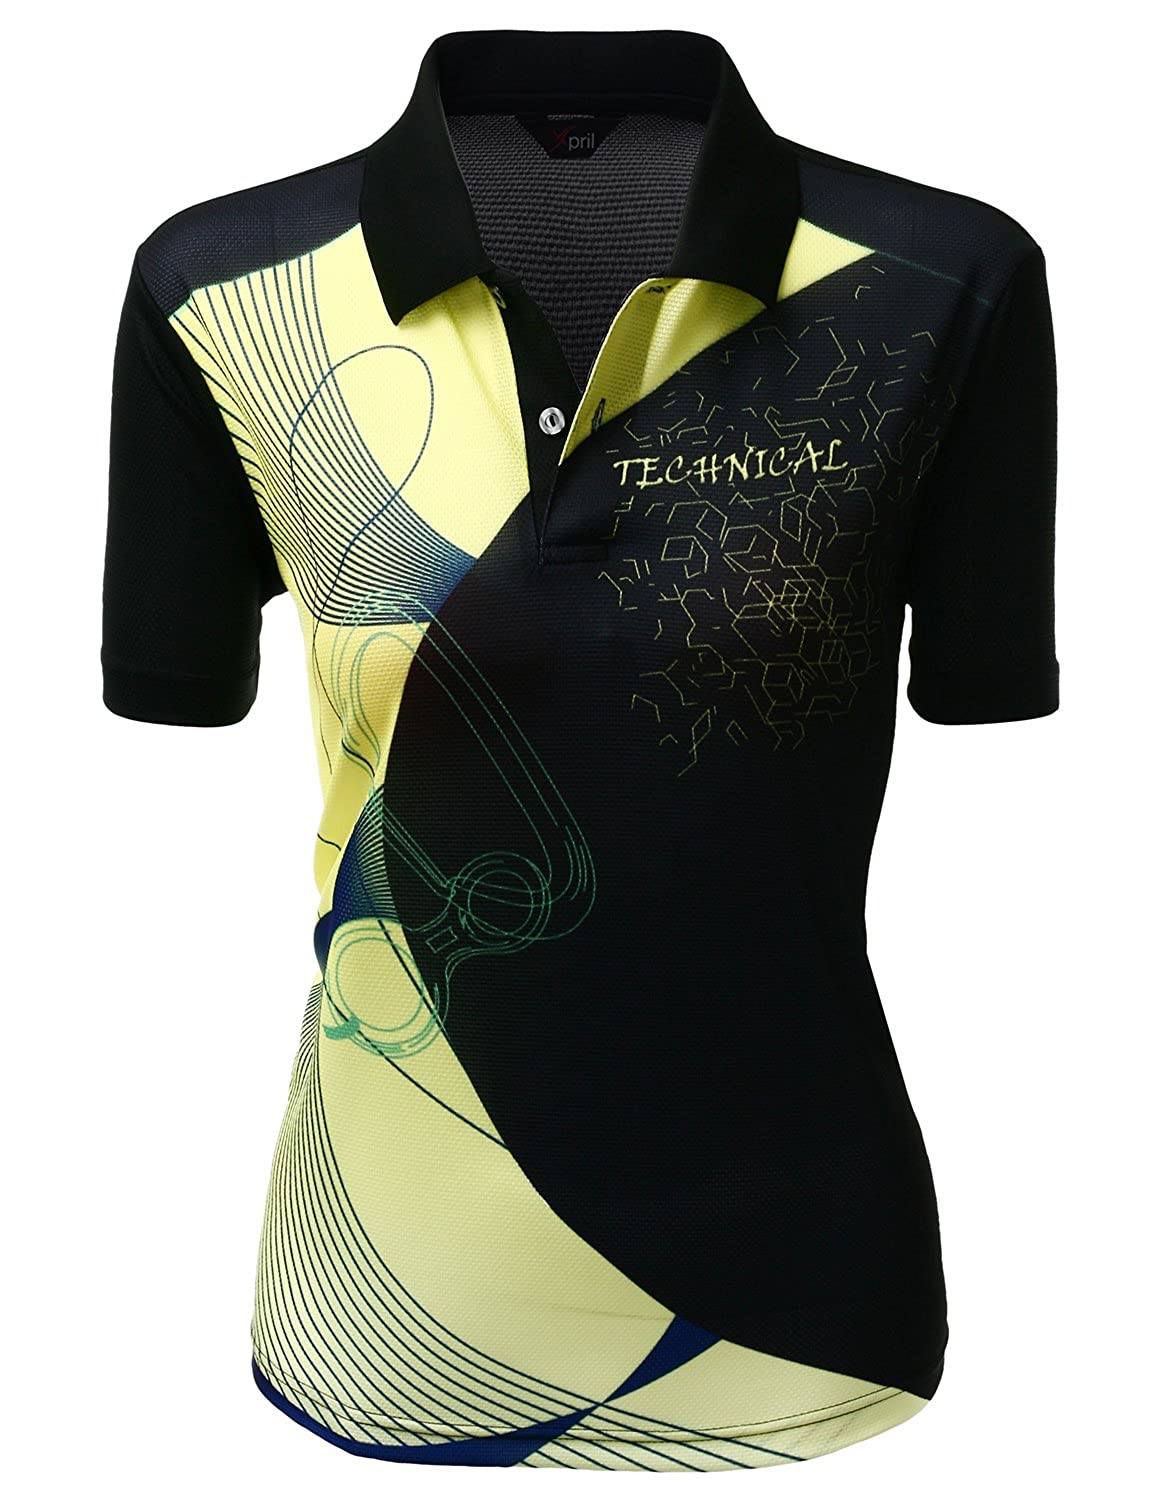 502f9c05c84 Cool Max Fabric Collar T-Shirt created with Cool and Sporty Print Design.  Functional Coolon Fabric is Light